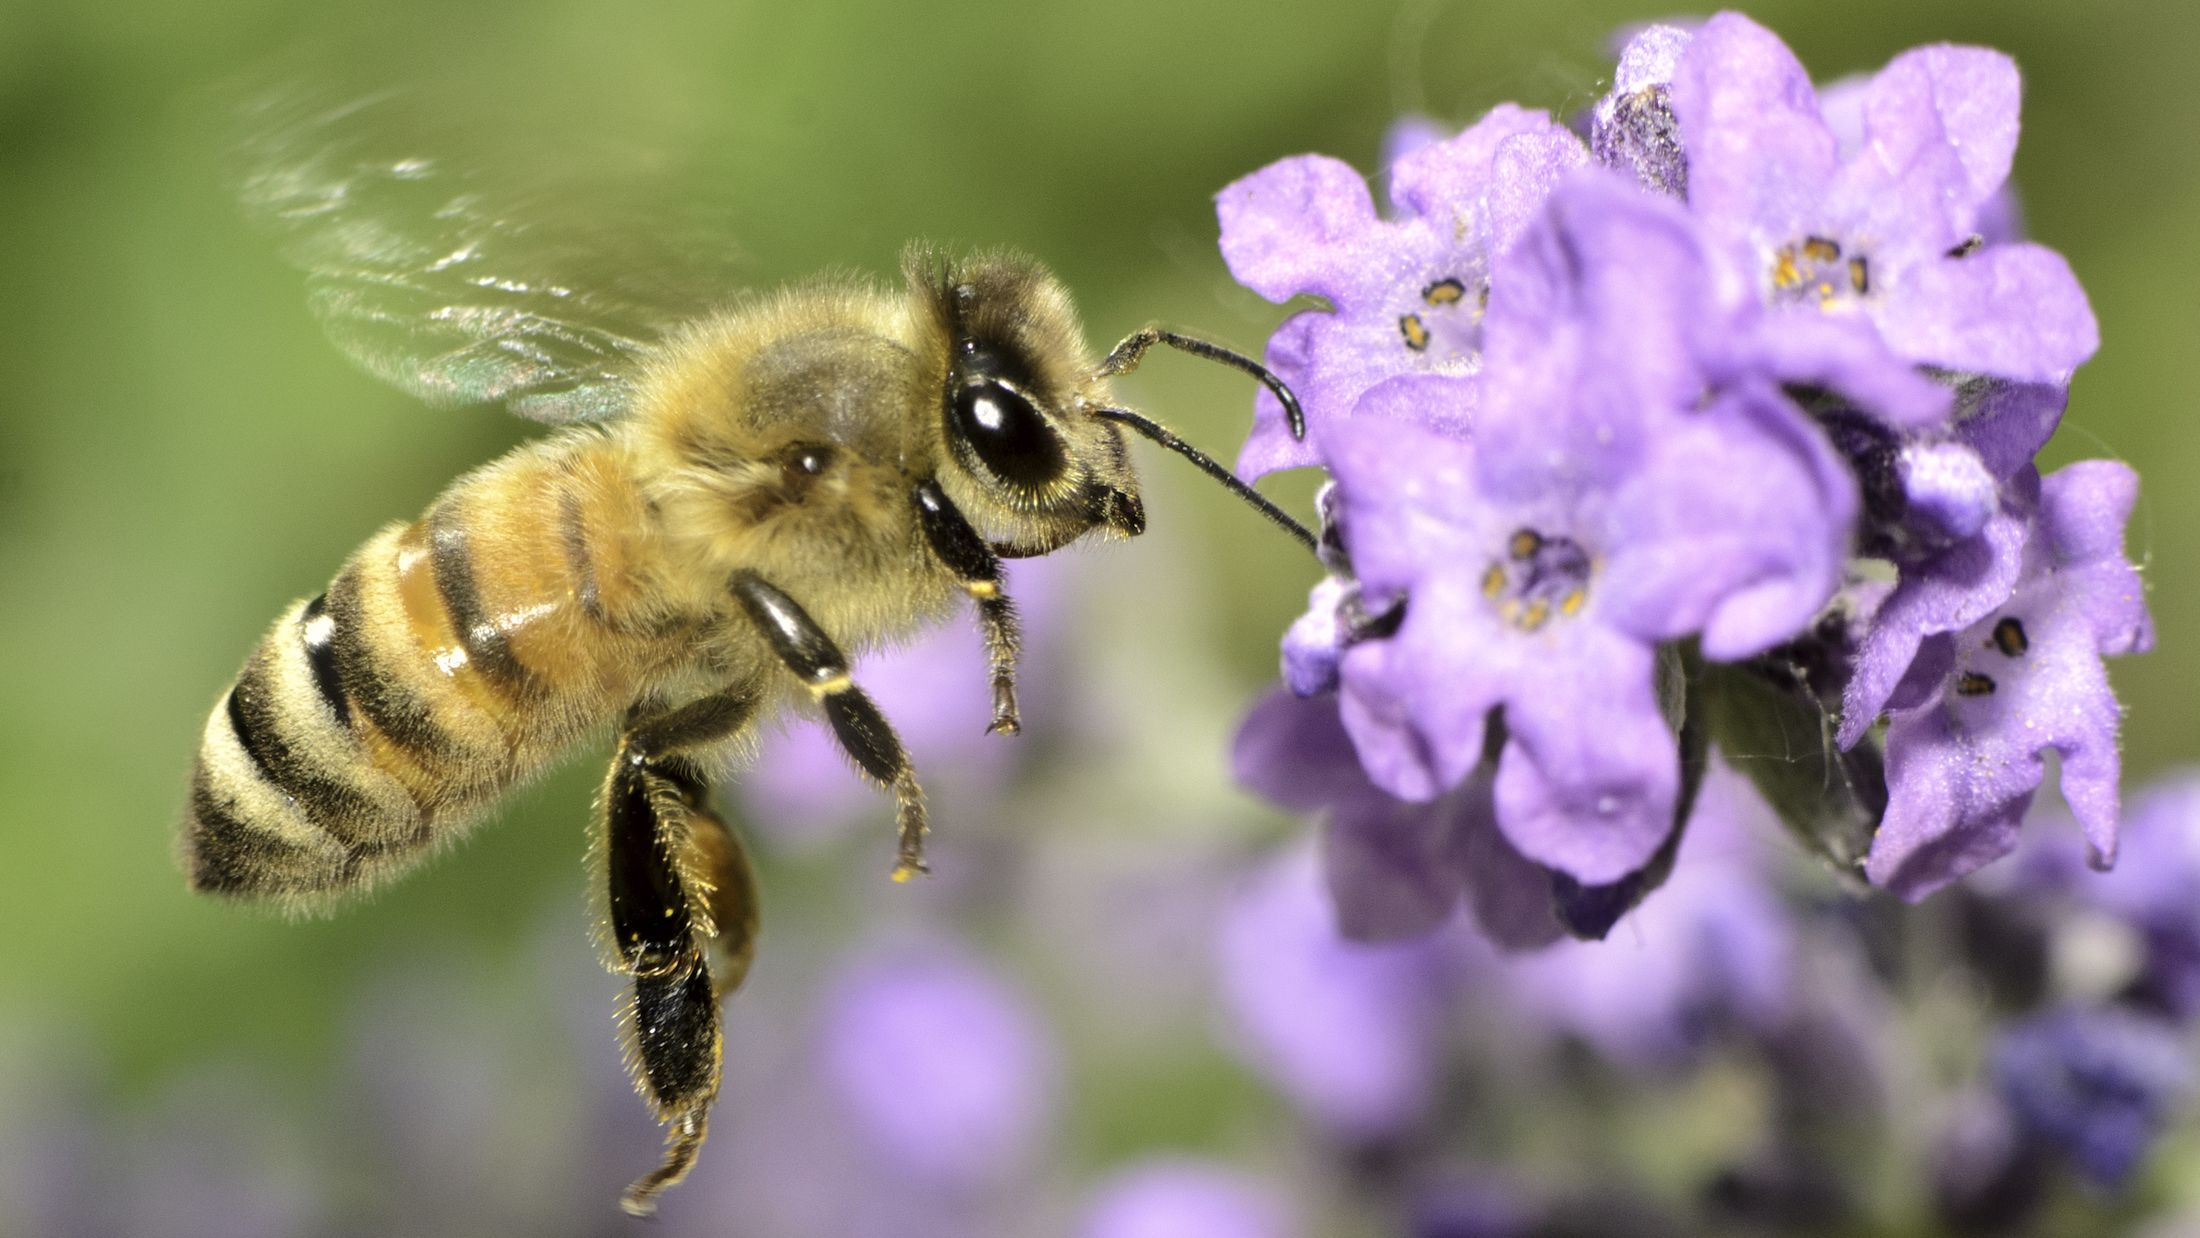 13 Fascinating Facts About Bees